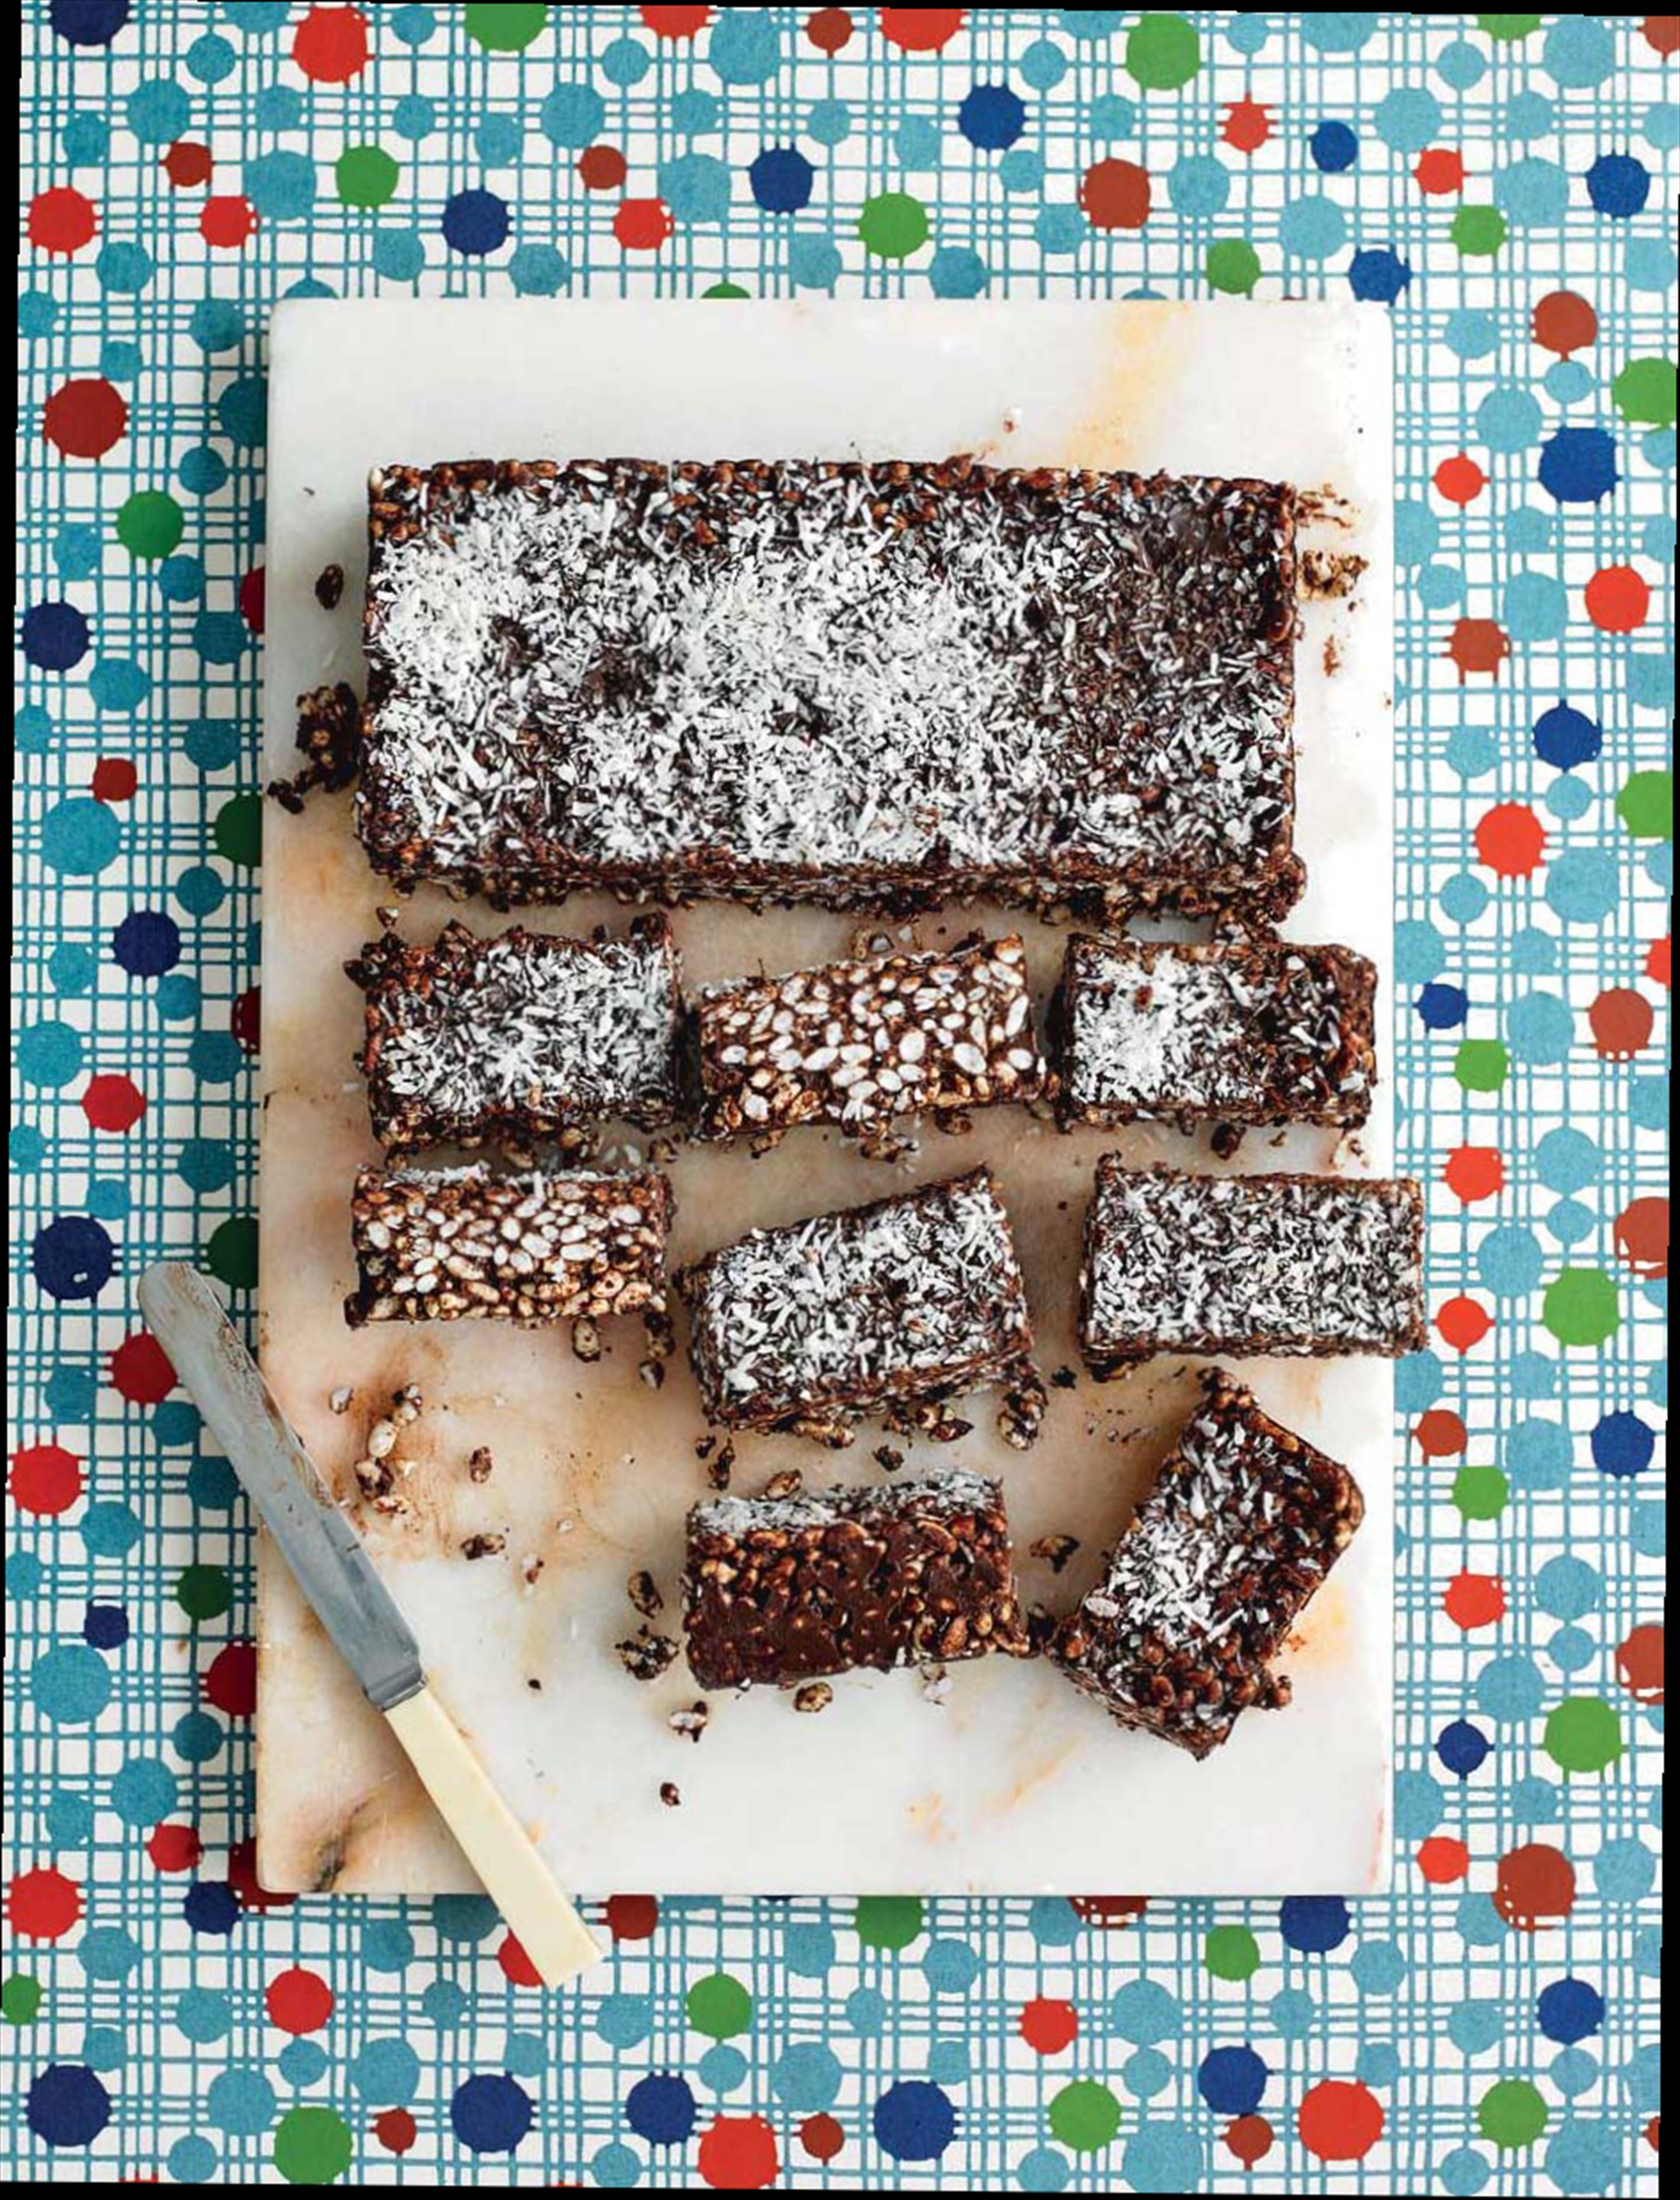 Crispy chocolate & coconut bars